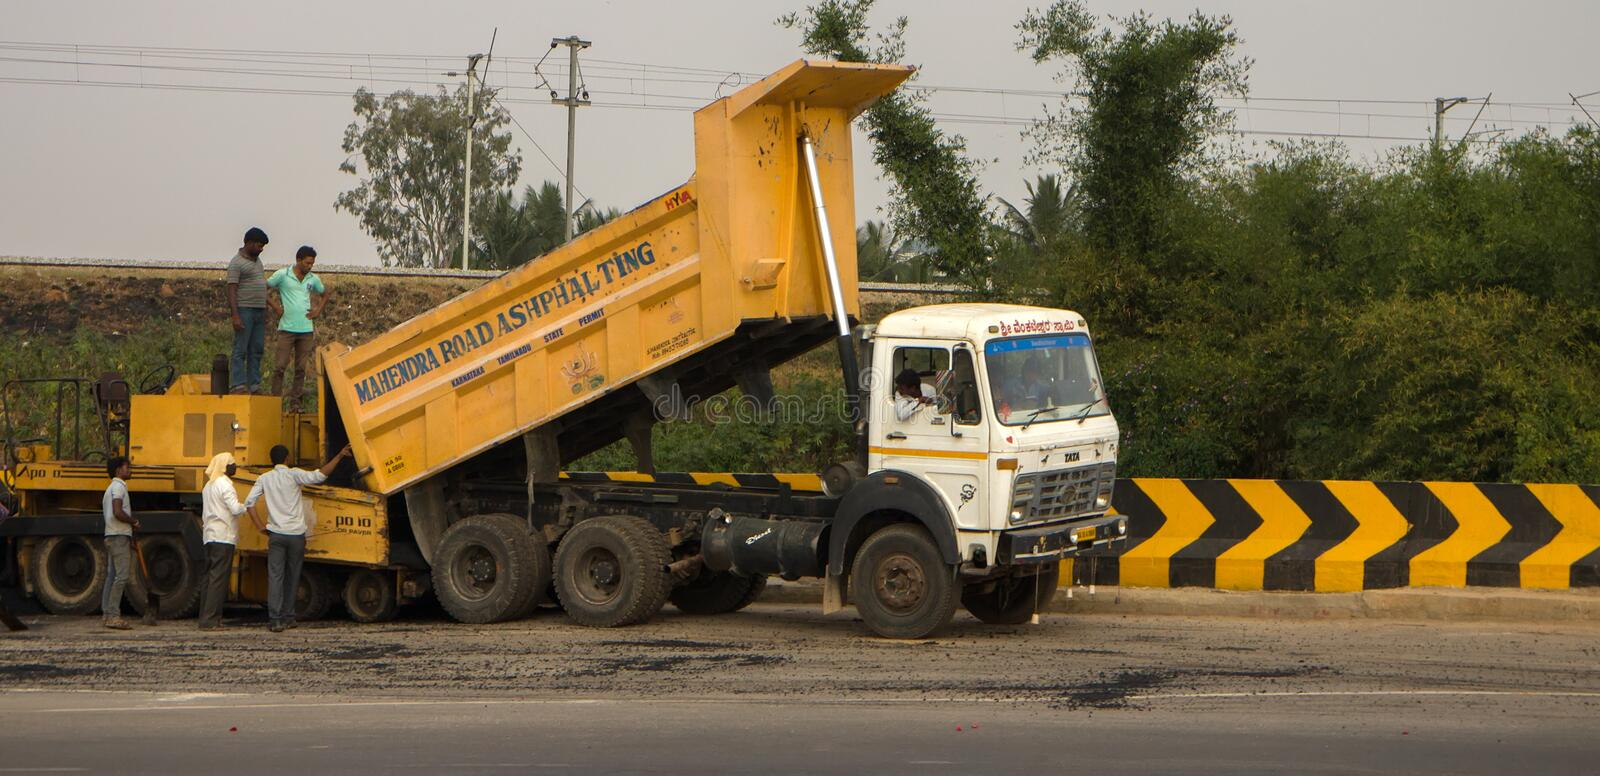 Road Surfacing Asphalt Machine Roller Editorial Stock Photo